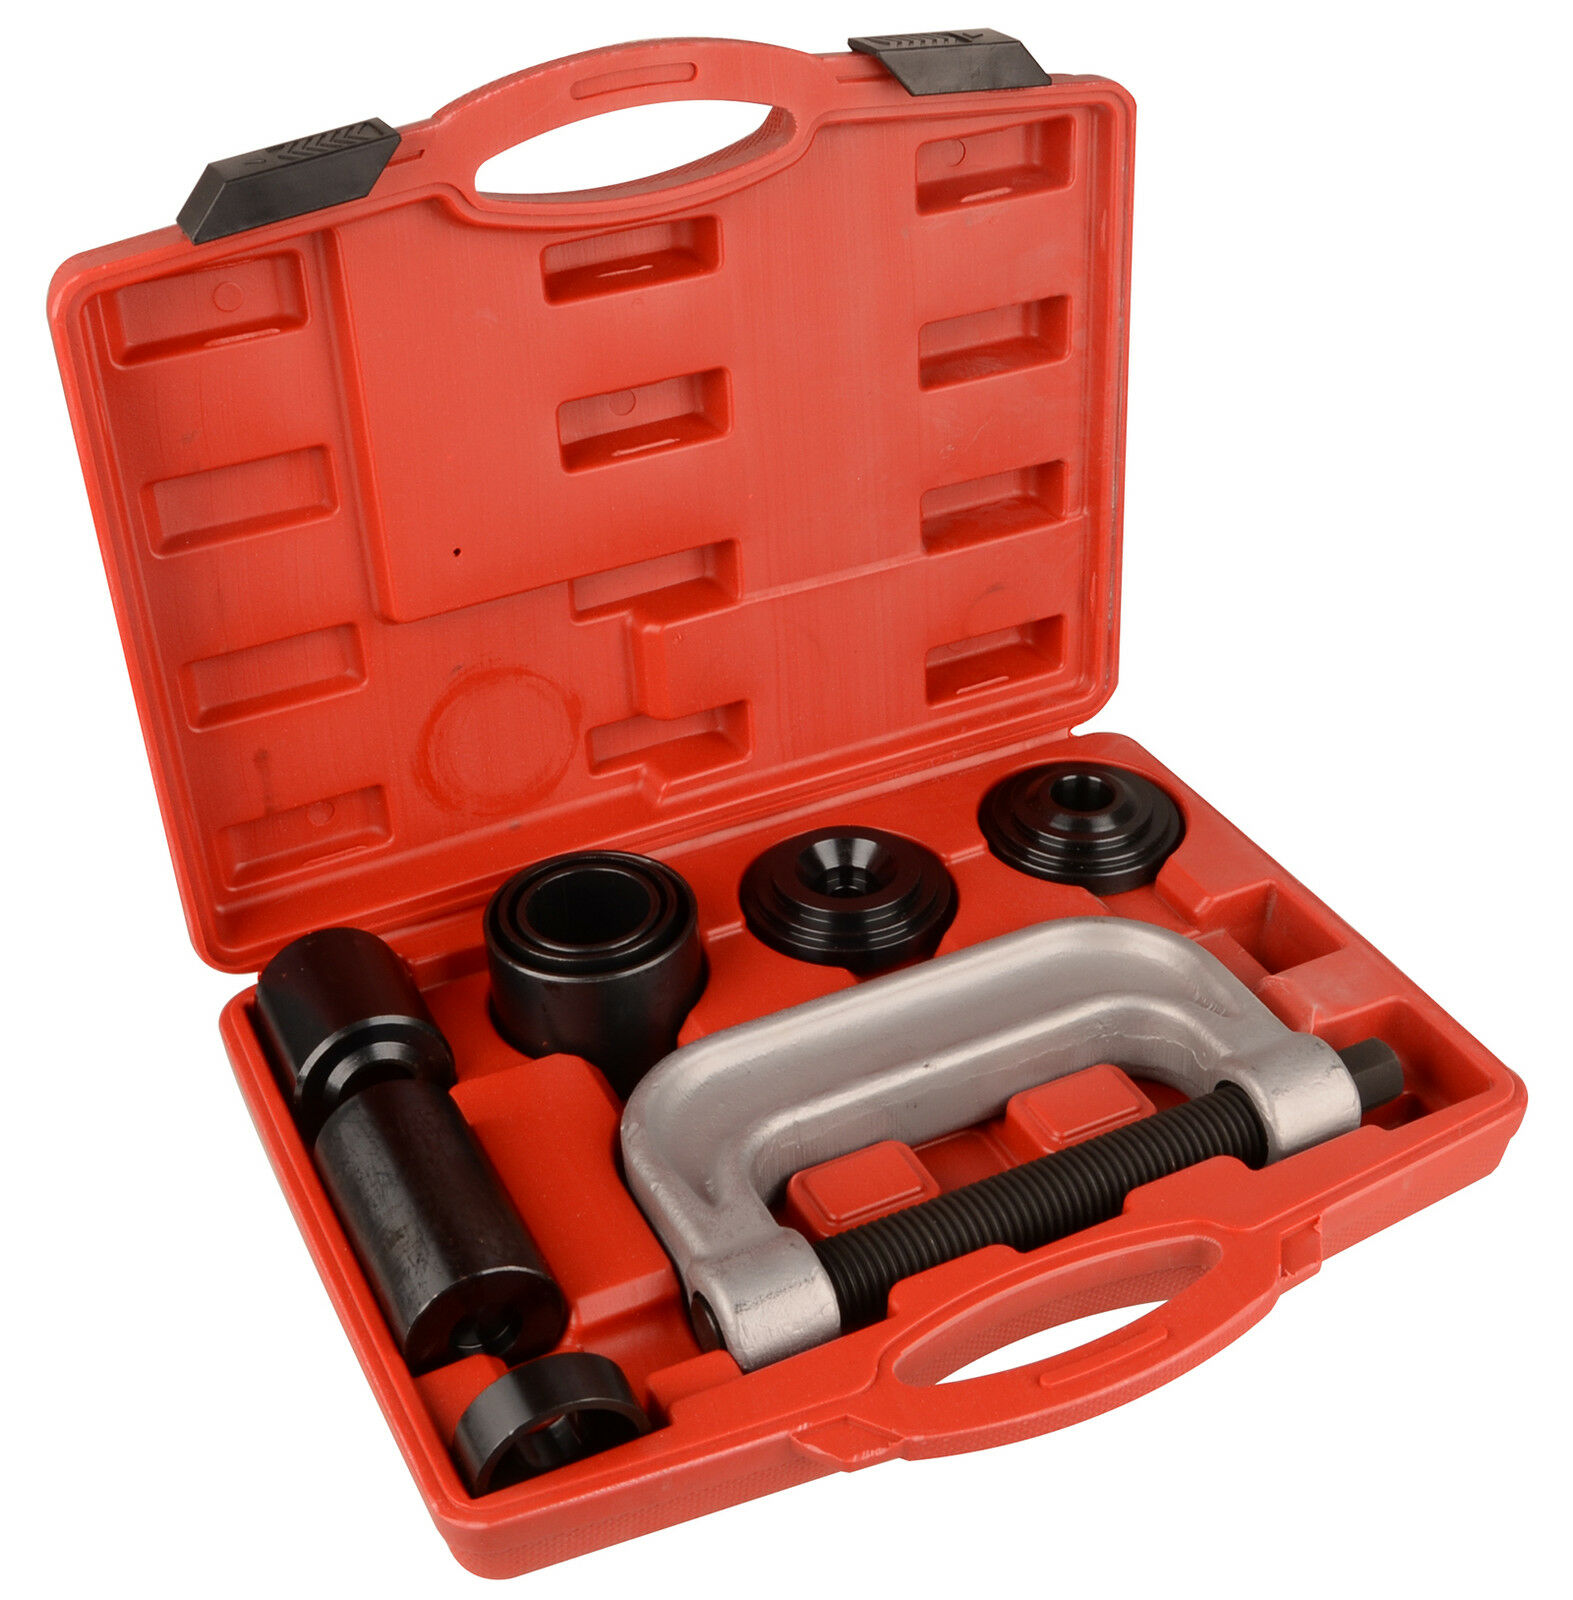 Red case with manual press parts